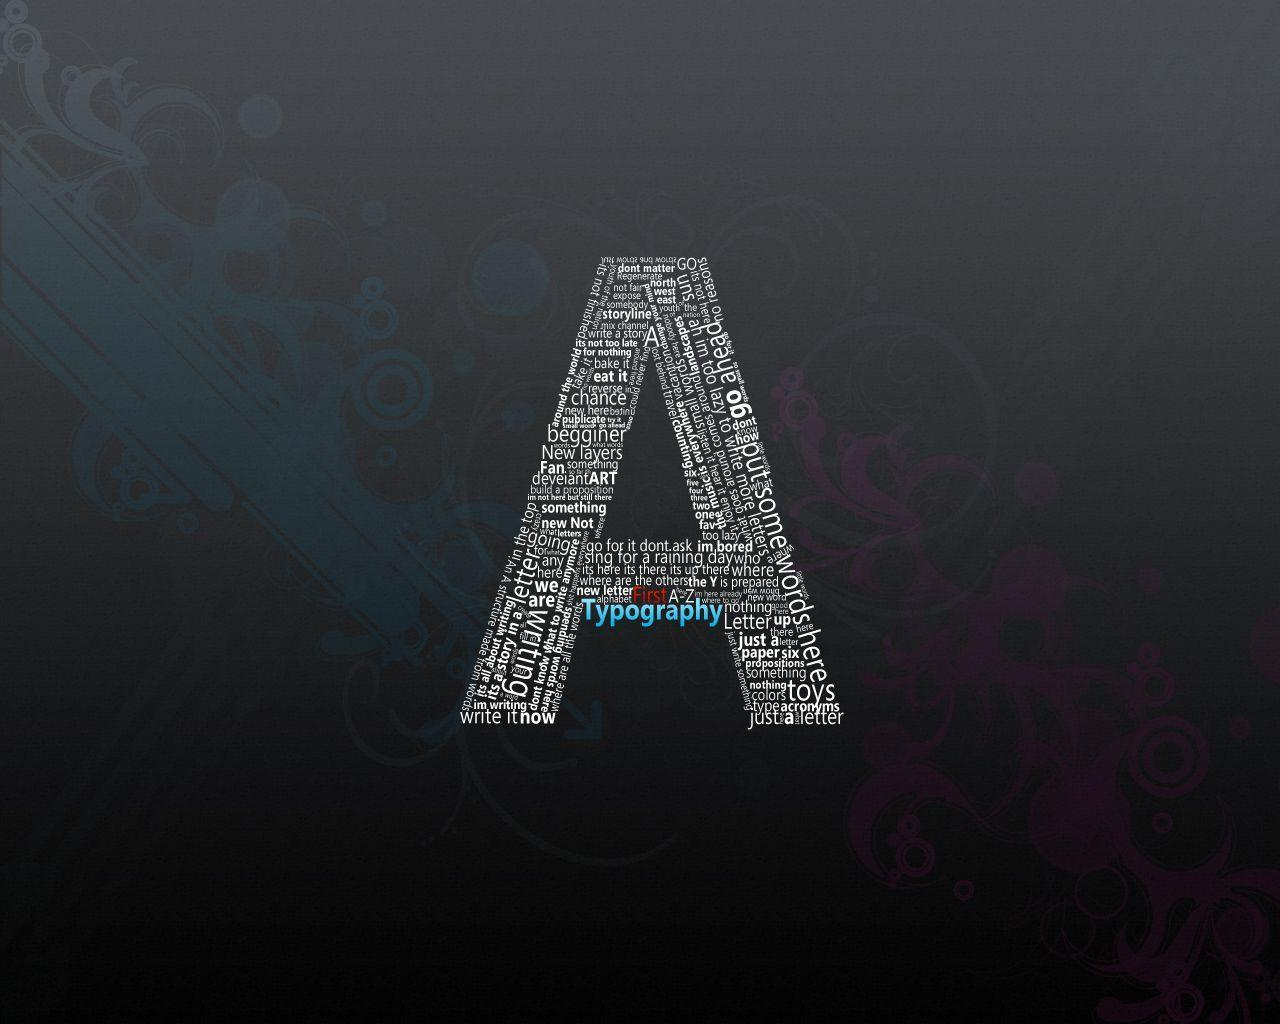 Letter A Wallpaper - WallpaperSafari